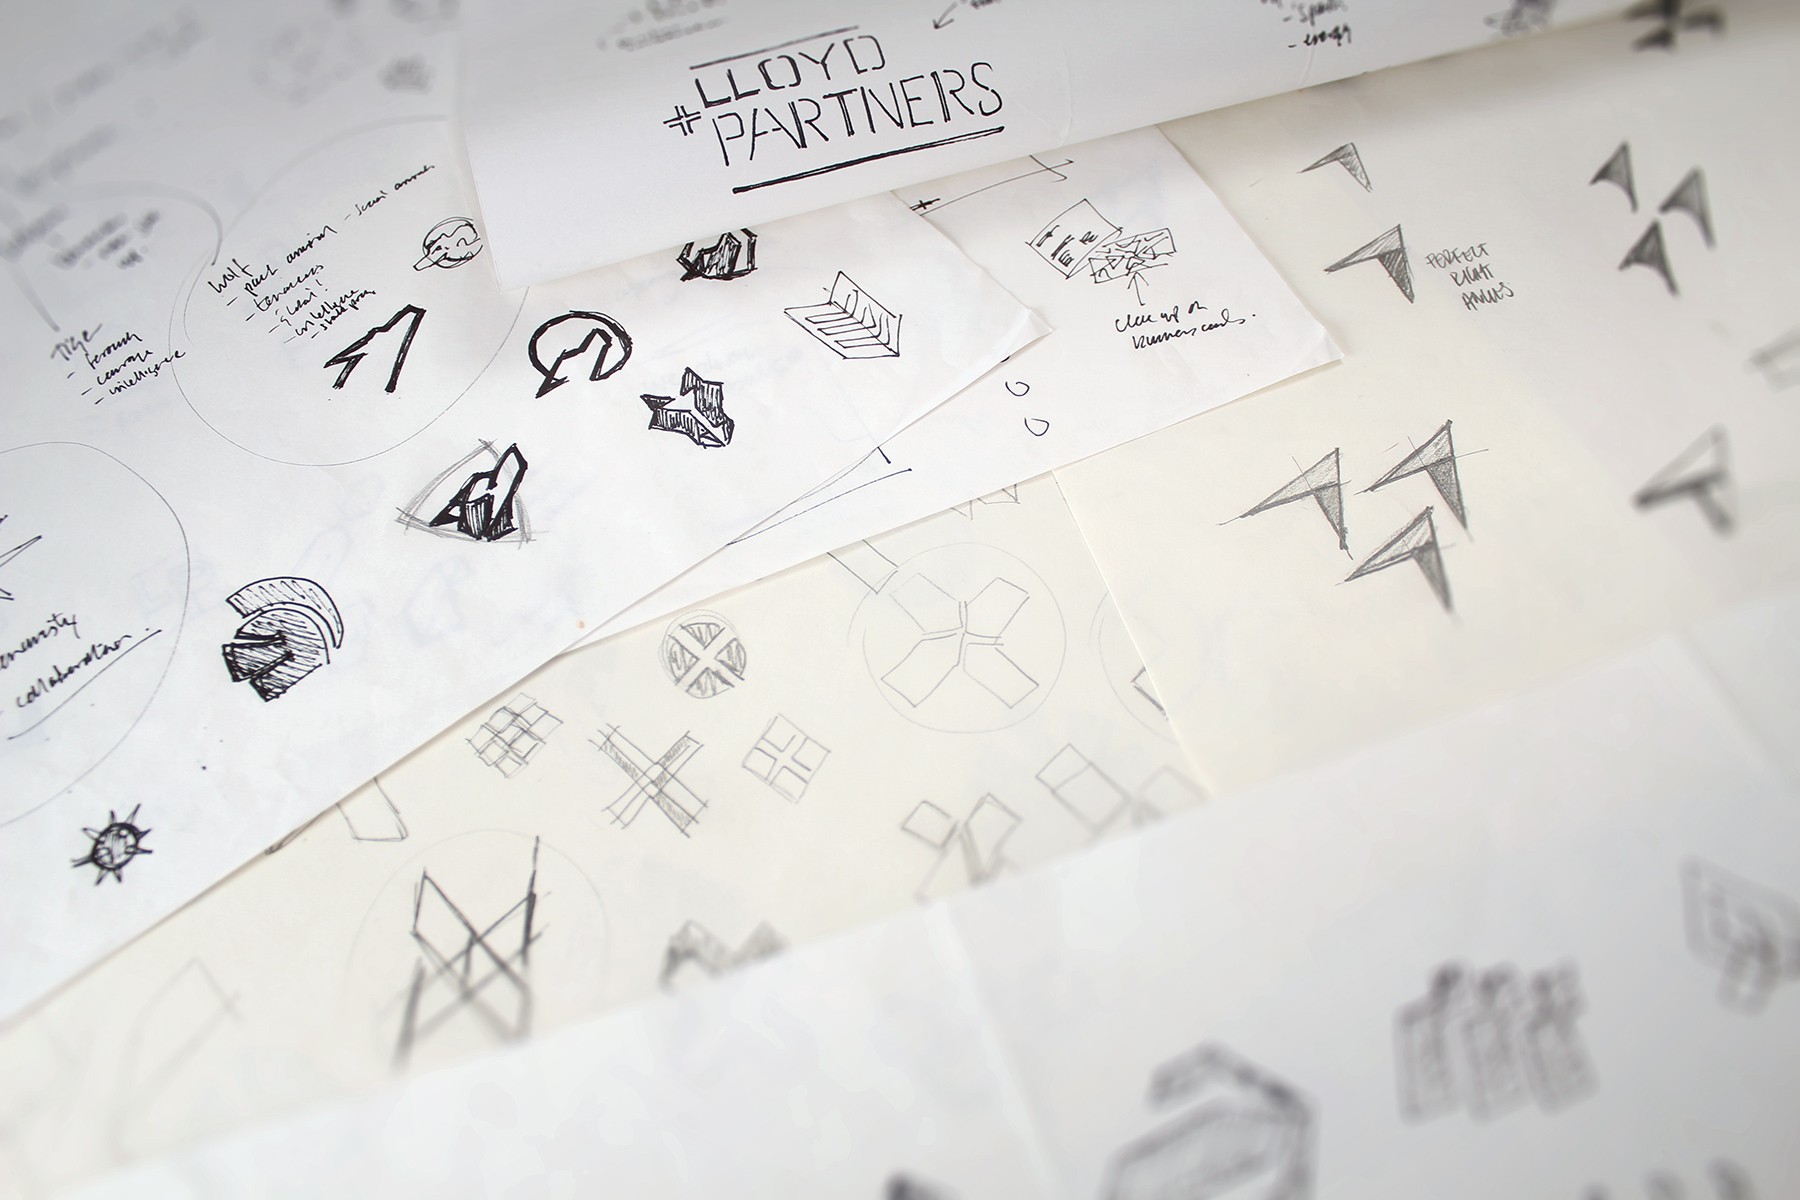 A number of initial routes were sketched out, some focusing on a symbol and others purely on a typographic word mark; all of which could later be further developed